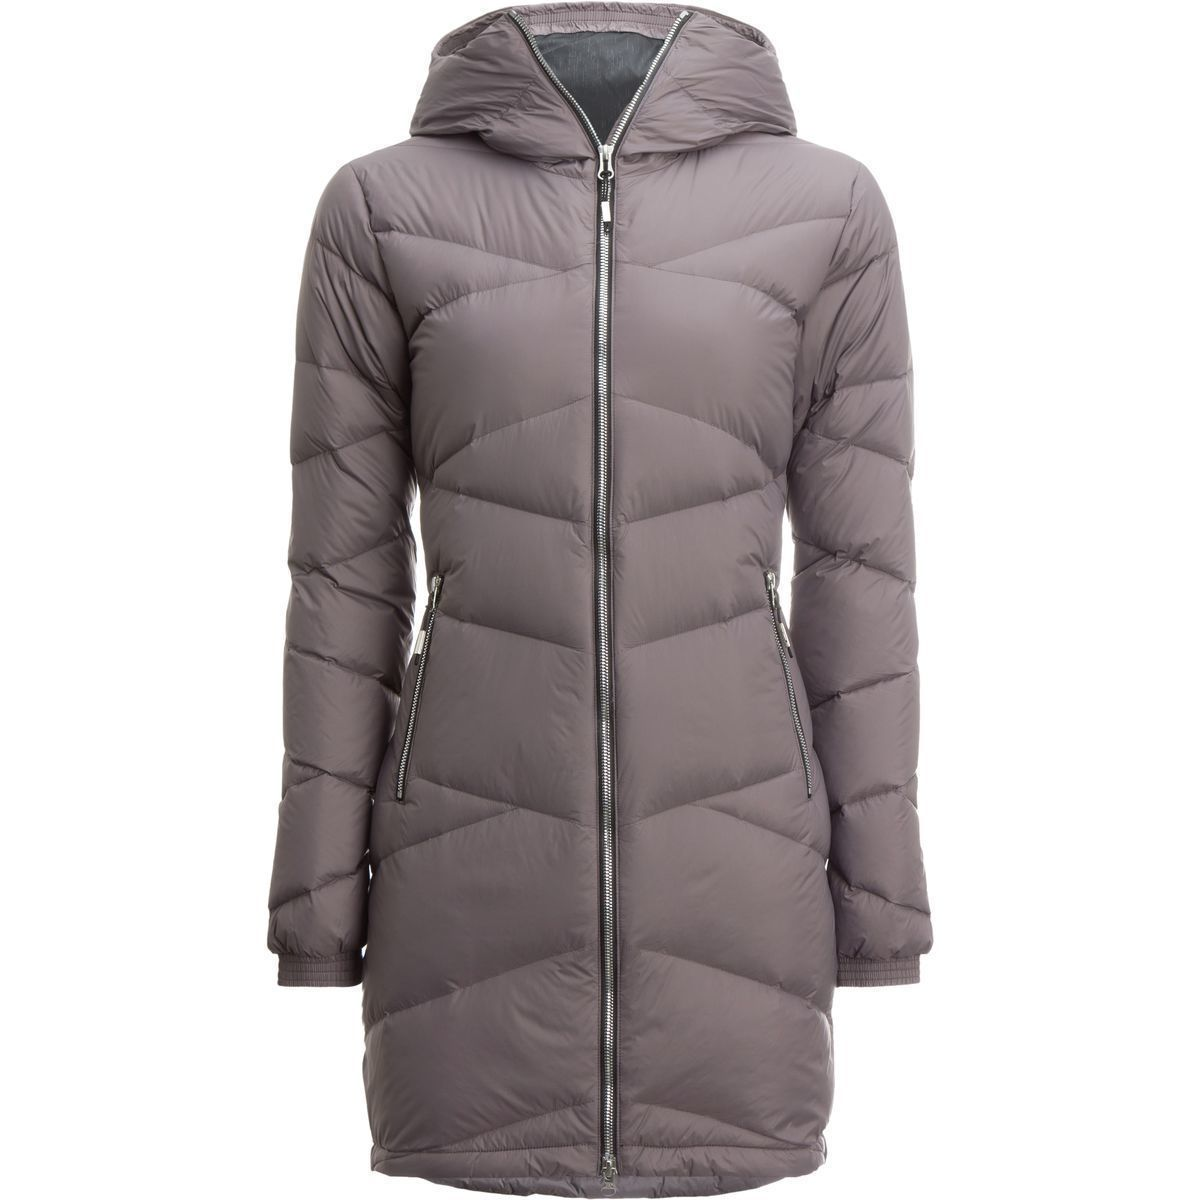 Up to 65% Off + Extra 20% Off Insulated Jackets @ Backcountry online deal